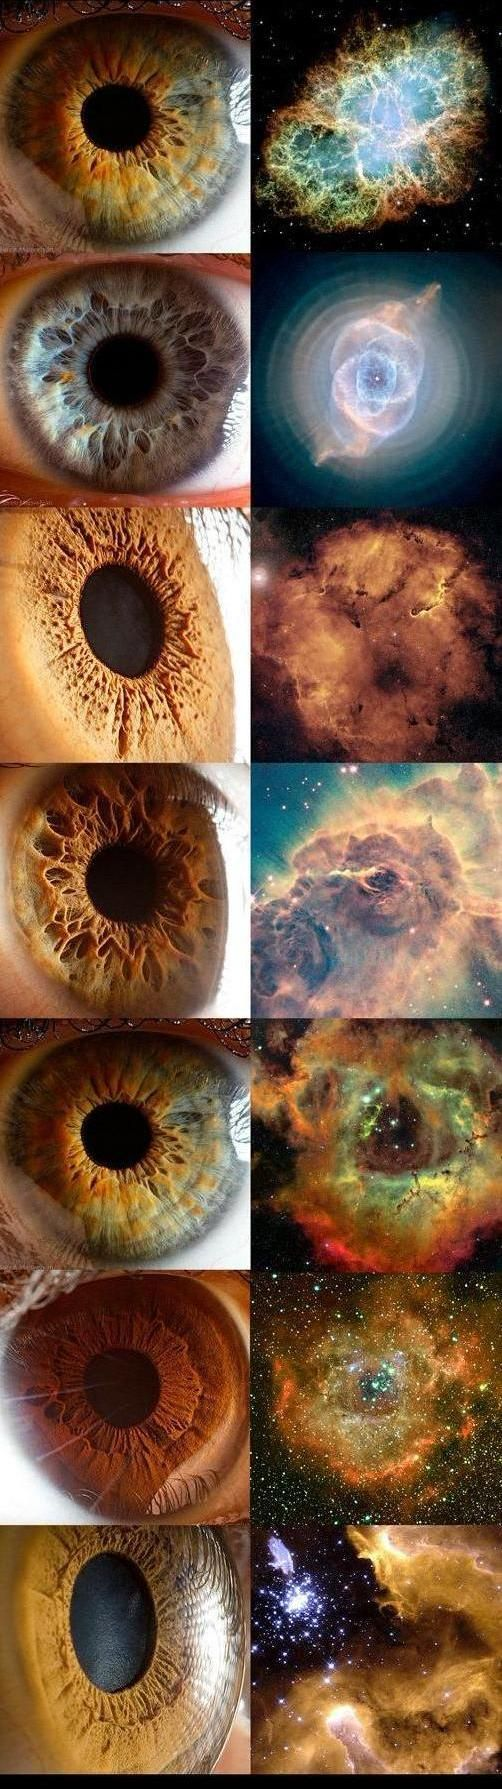 Eyes and nebulas ..wow :)